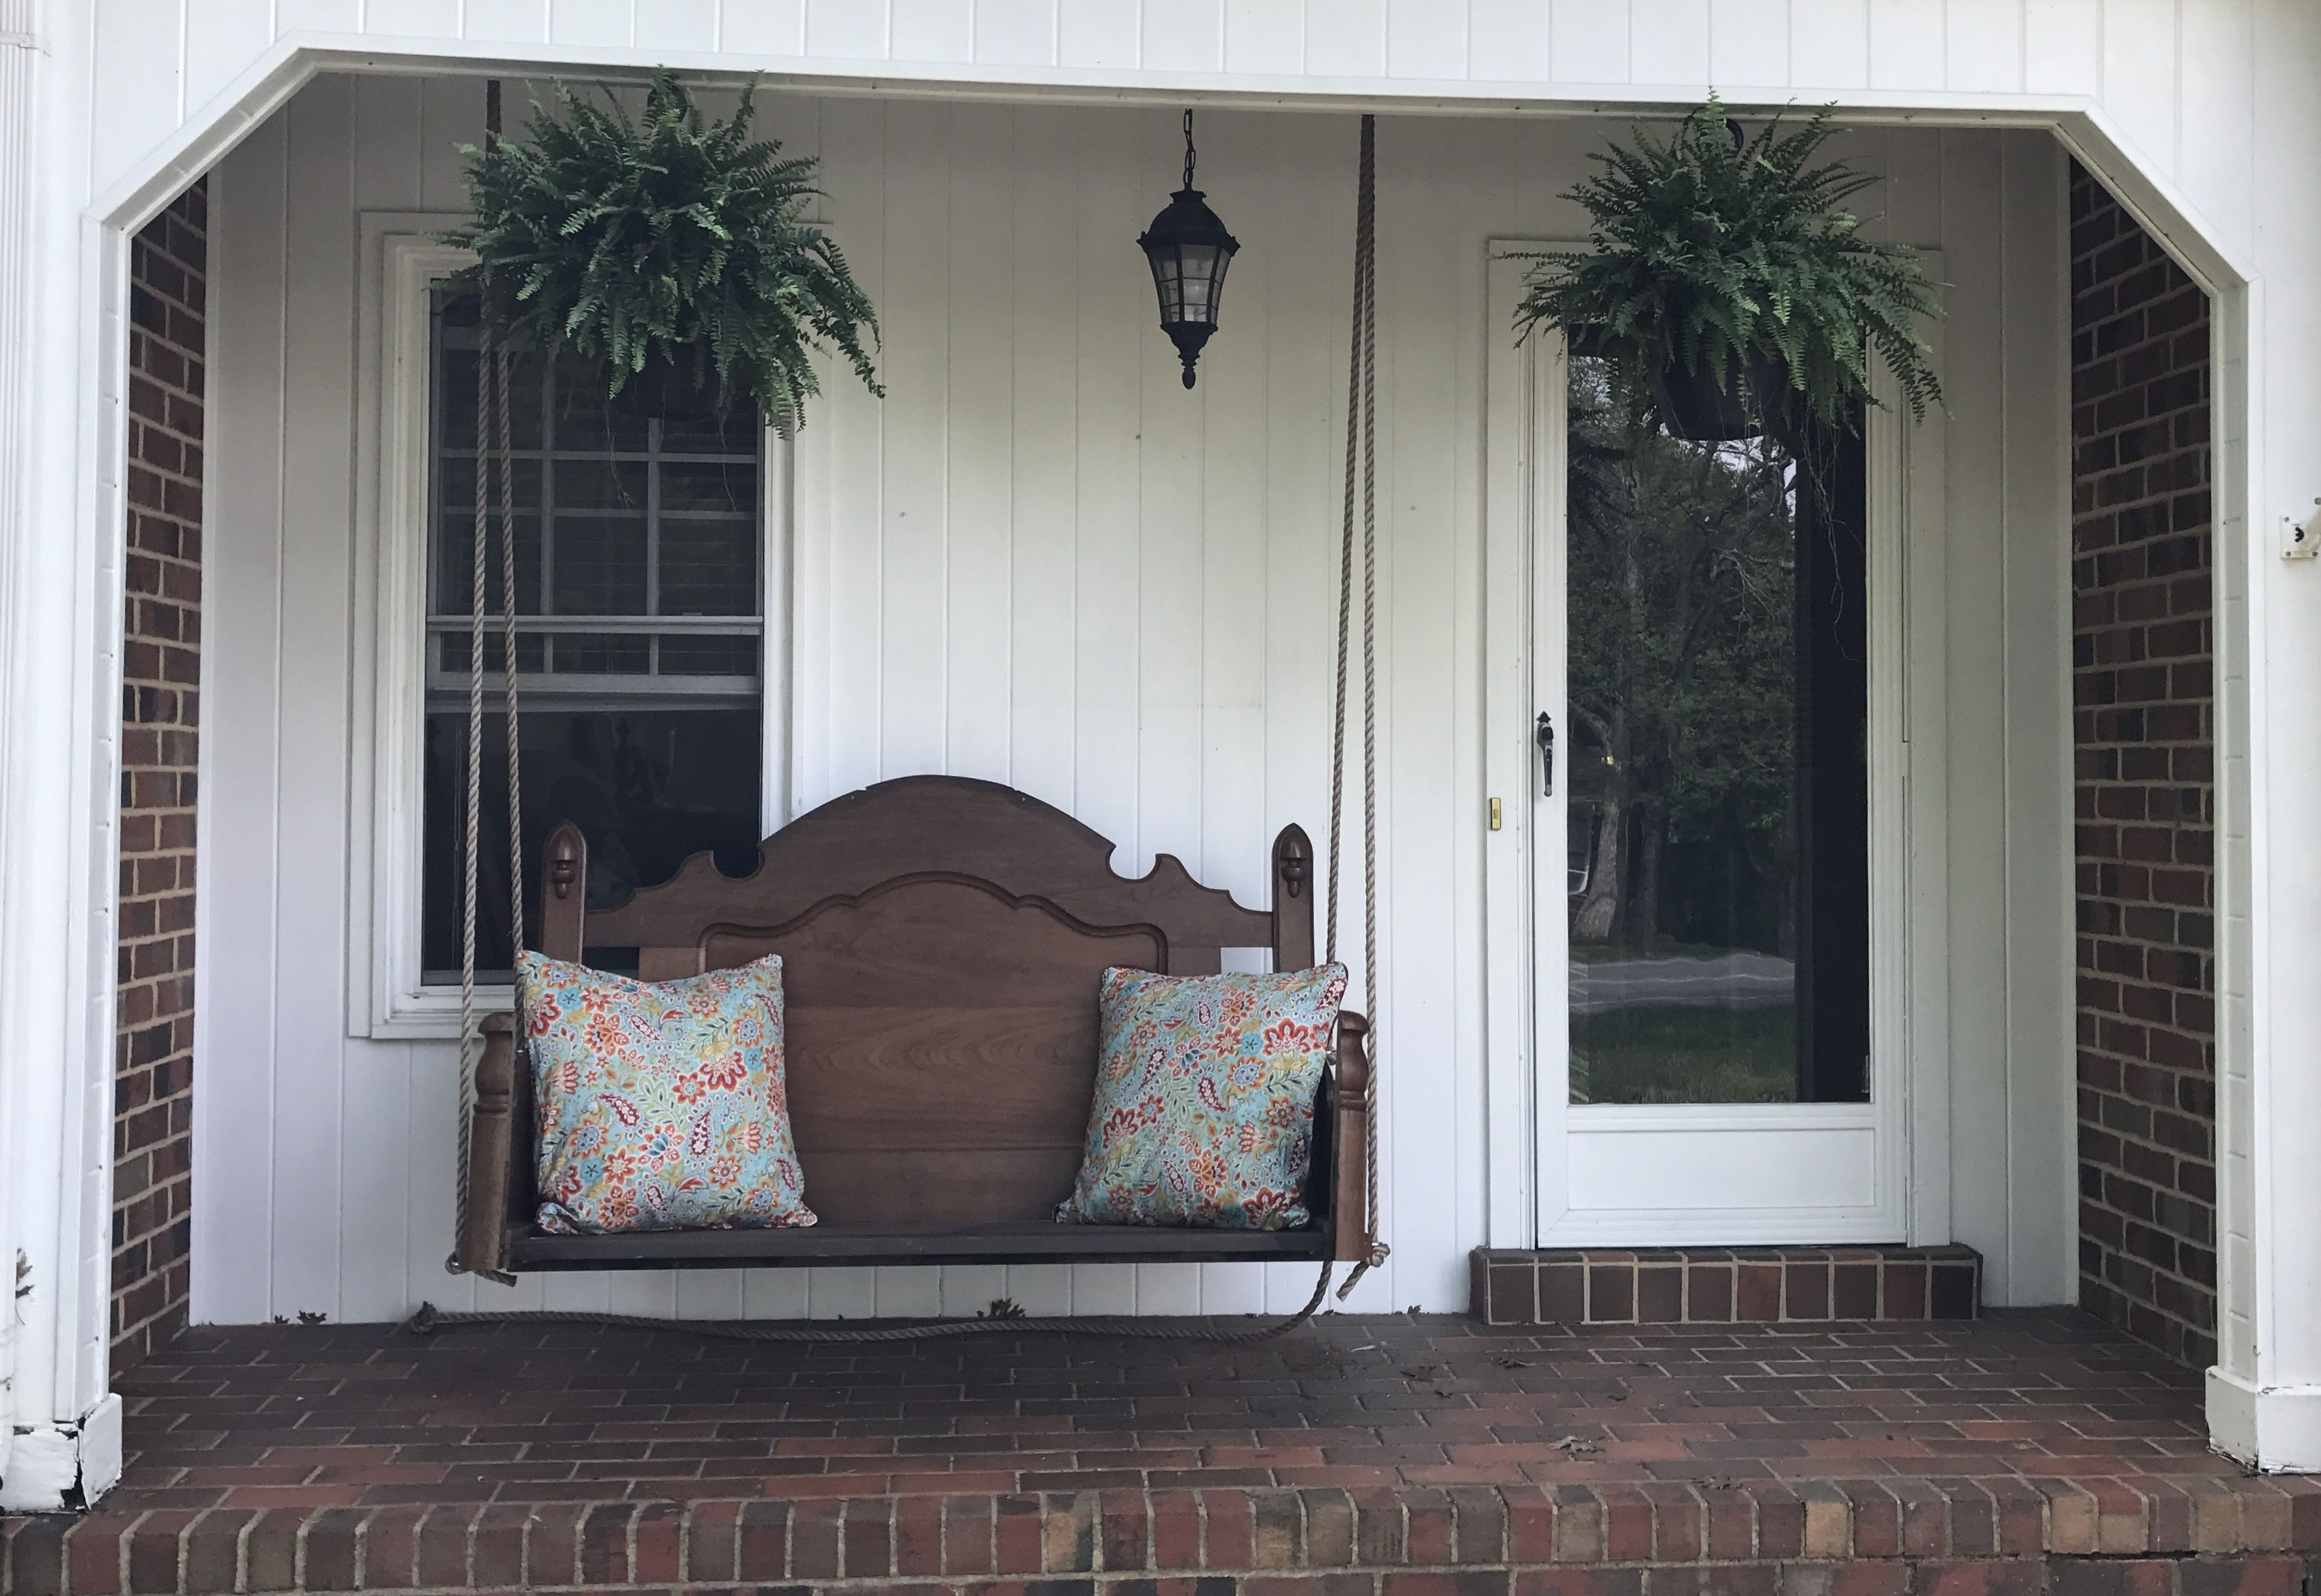 Swing Made From A Full Sized Headboard And Footboard Porch Swing Porch Swing Headboard And Footboard Porch Swing Bed